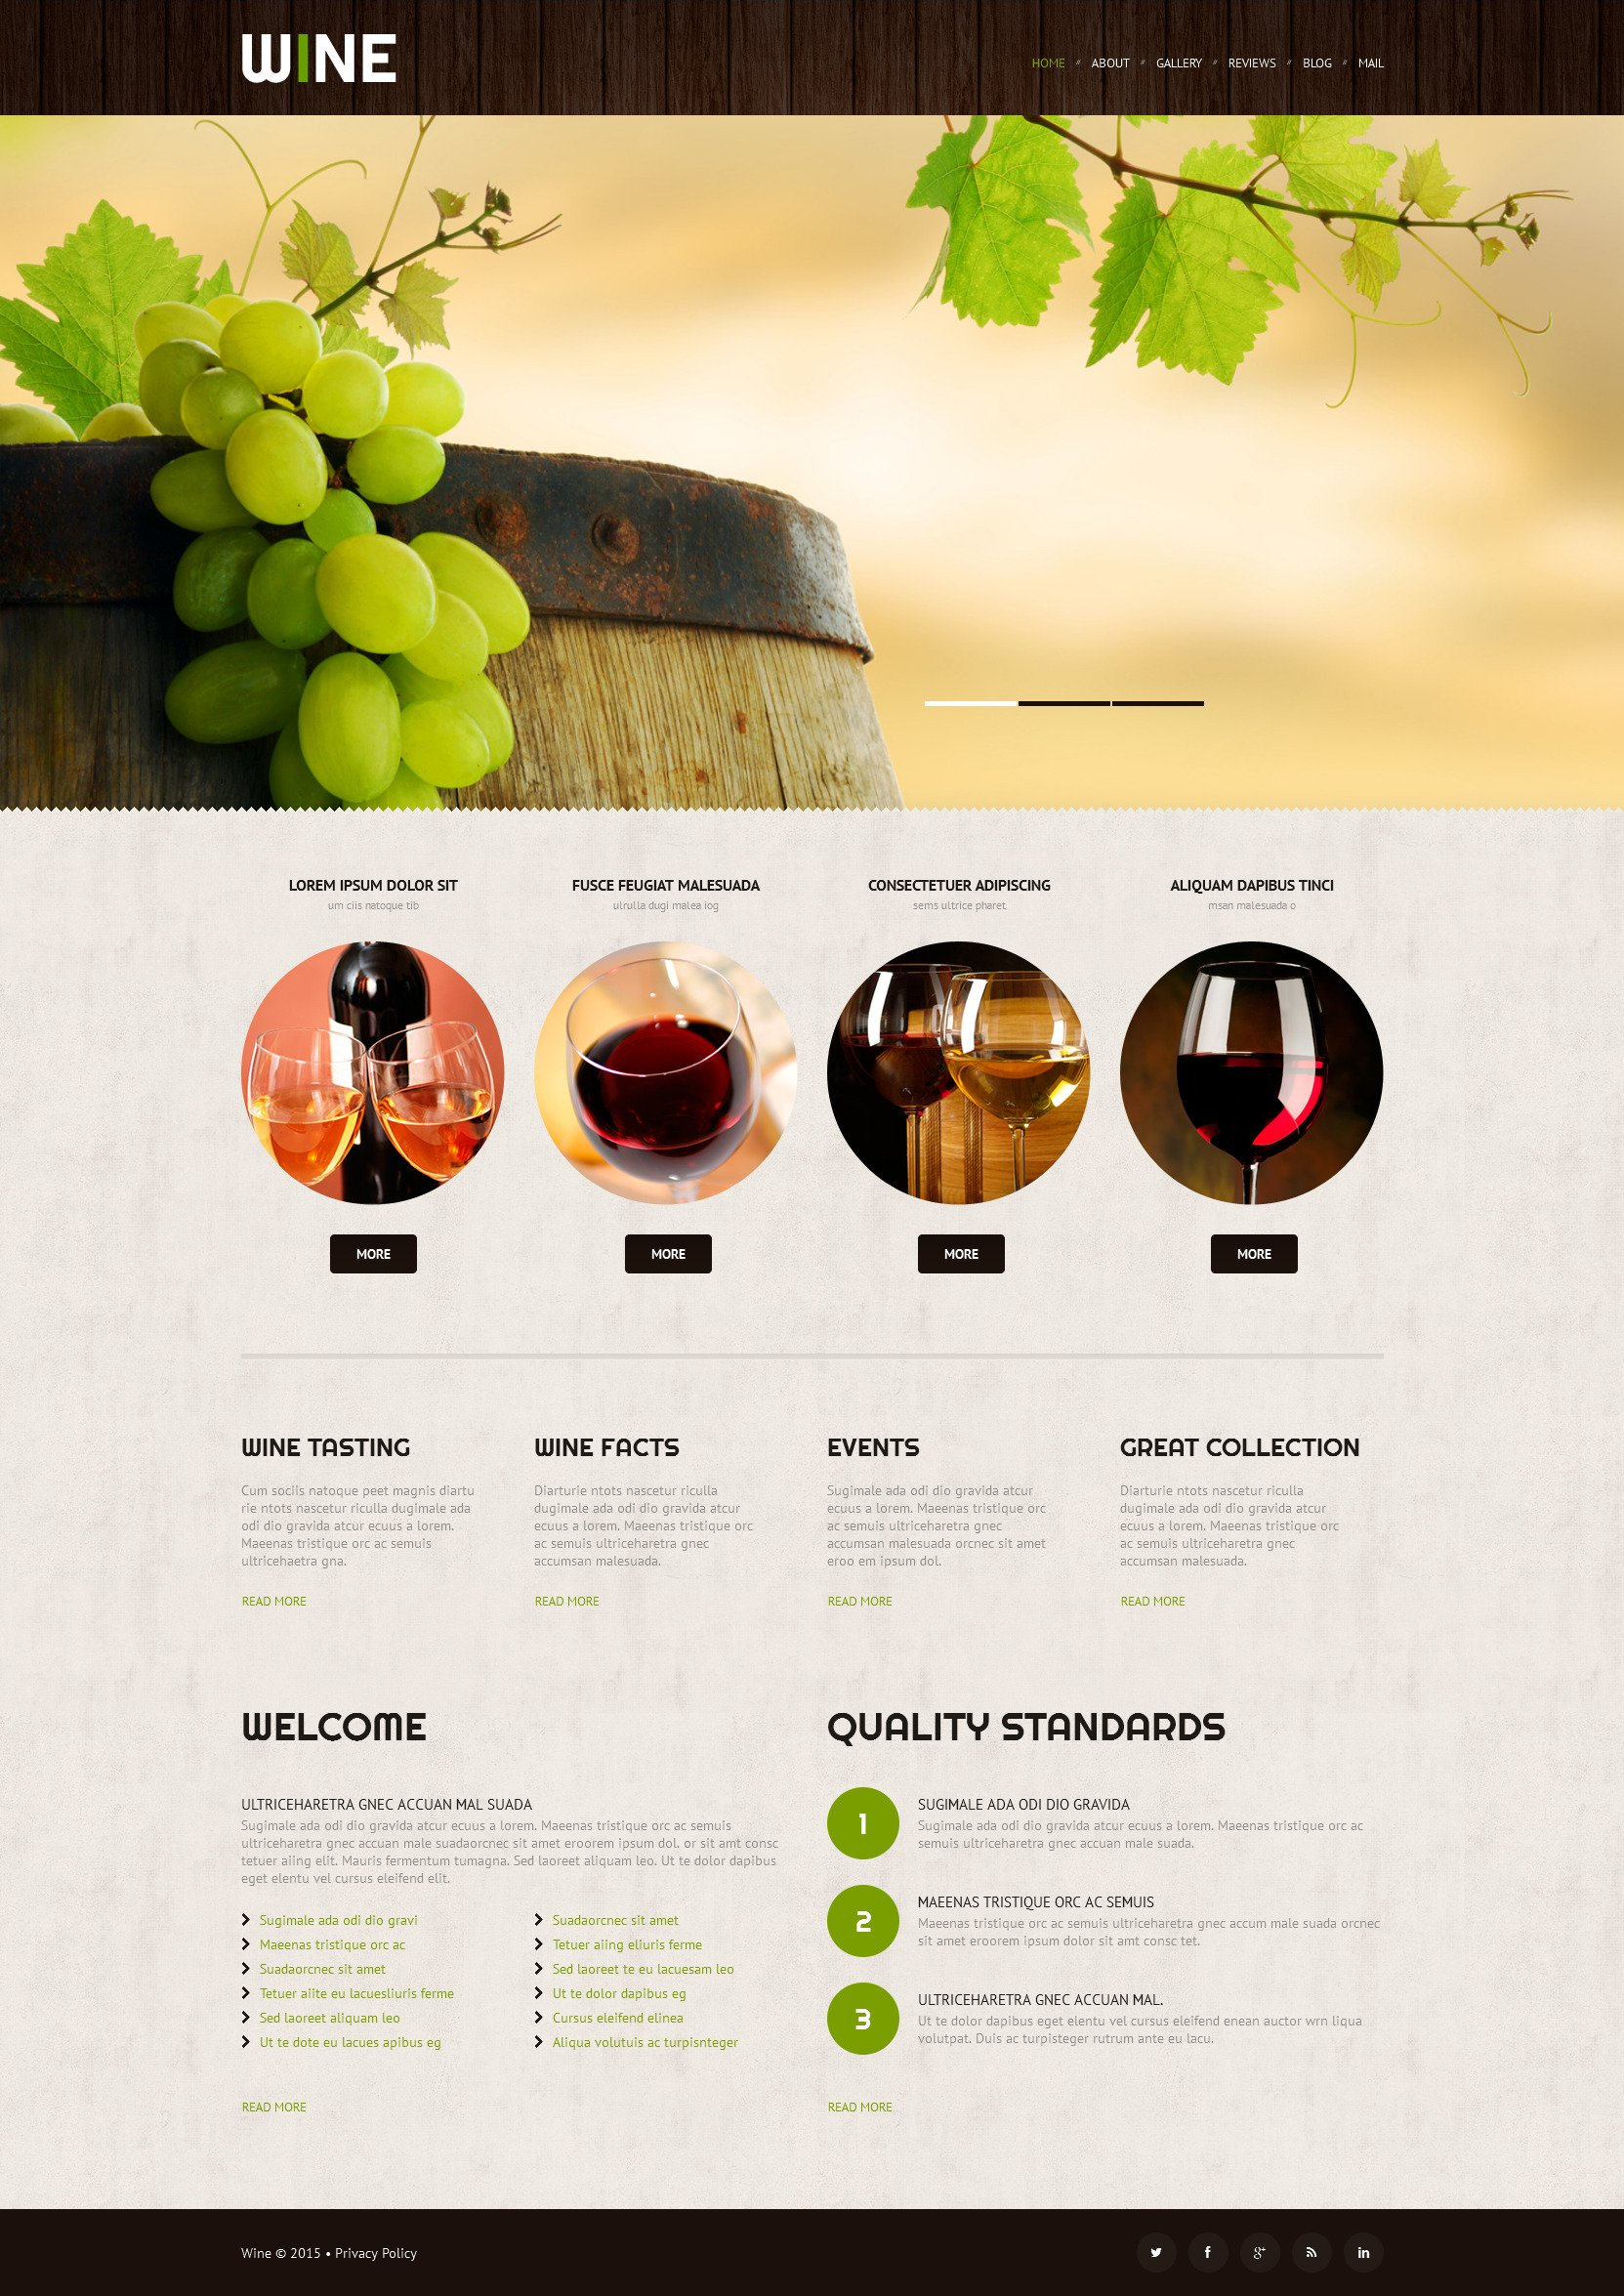 The Wine Club Collection Store WordPress Design 52998, one of the best WordPress themes of its kind (food & drink, most popular), also known as Wine club collection store WordPress template, production WordPress template, grape WordPress template, collection WordPress template, red WordPress template, white rose WordPress template, bubbly WordPress template, kosher WordPress template, Champagne dry WordPress template, traditions WordPress template, cabernet WordPress template, sauvignon WordPress template, chardonnay WordPress template, Muscat Pinot Noir bottles WordPress template, cork WordPress template, Bordeaux Bourgogne glass WordPress template, taste restaurant WordPress template, alcohol WordPress template, bottle WordPress template, celebration WordPress template, barrels WordPress template, CRE Loaded site and related with Wine club collection store, production, grape, collection, red, white rose, bubbly, kosher, Champagne dry, traditions, cabernet, sauvignon, chardonnay, Muscat Pinot Noir bottles, cork, Bordeaux Bourgogne glass, taste restaurant, alcohol, bottle, celebration, barrels, CRE Loaded site, etc.